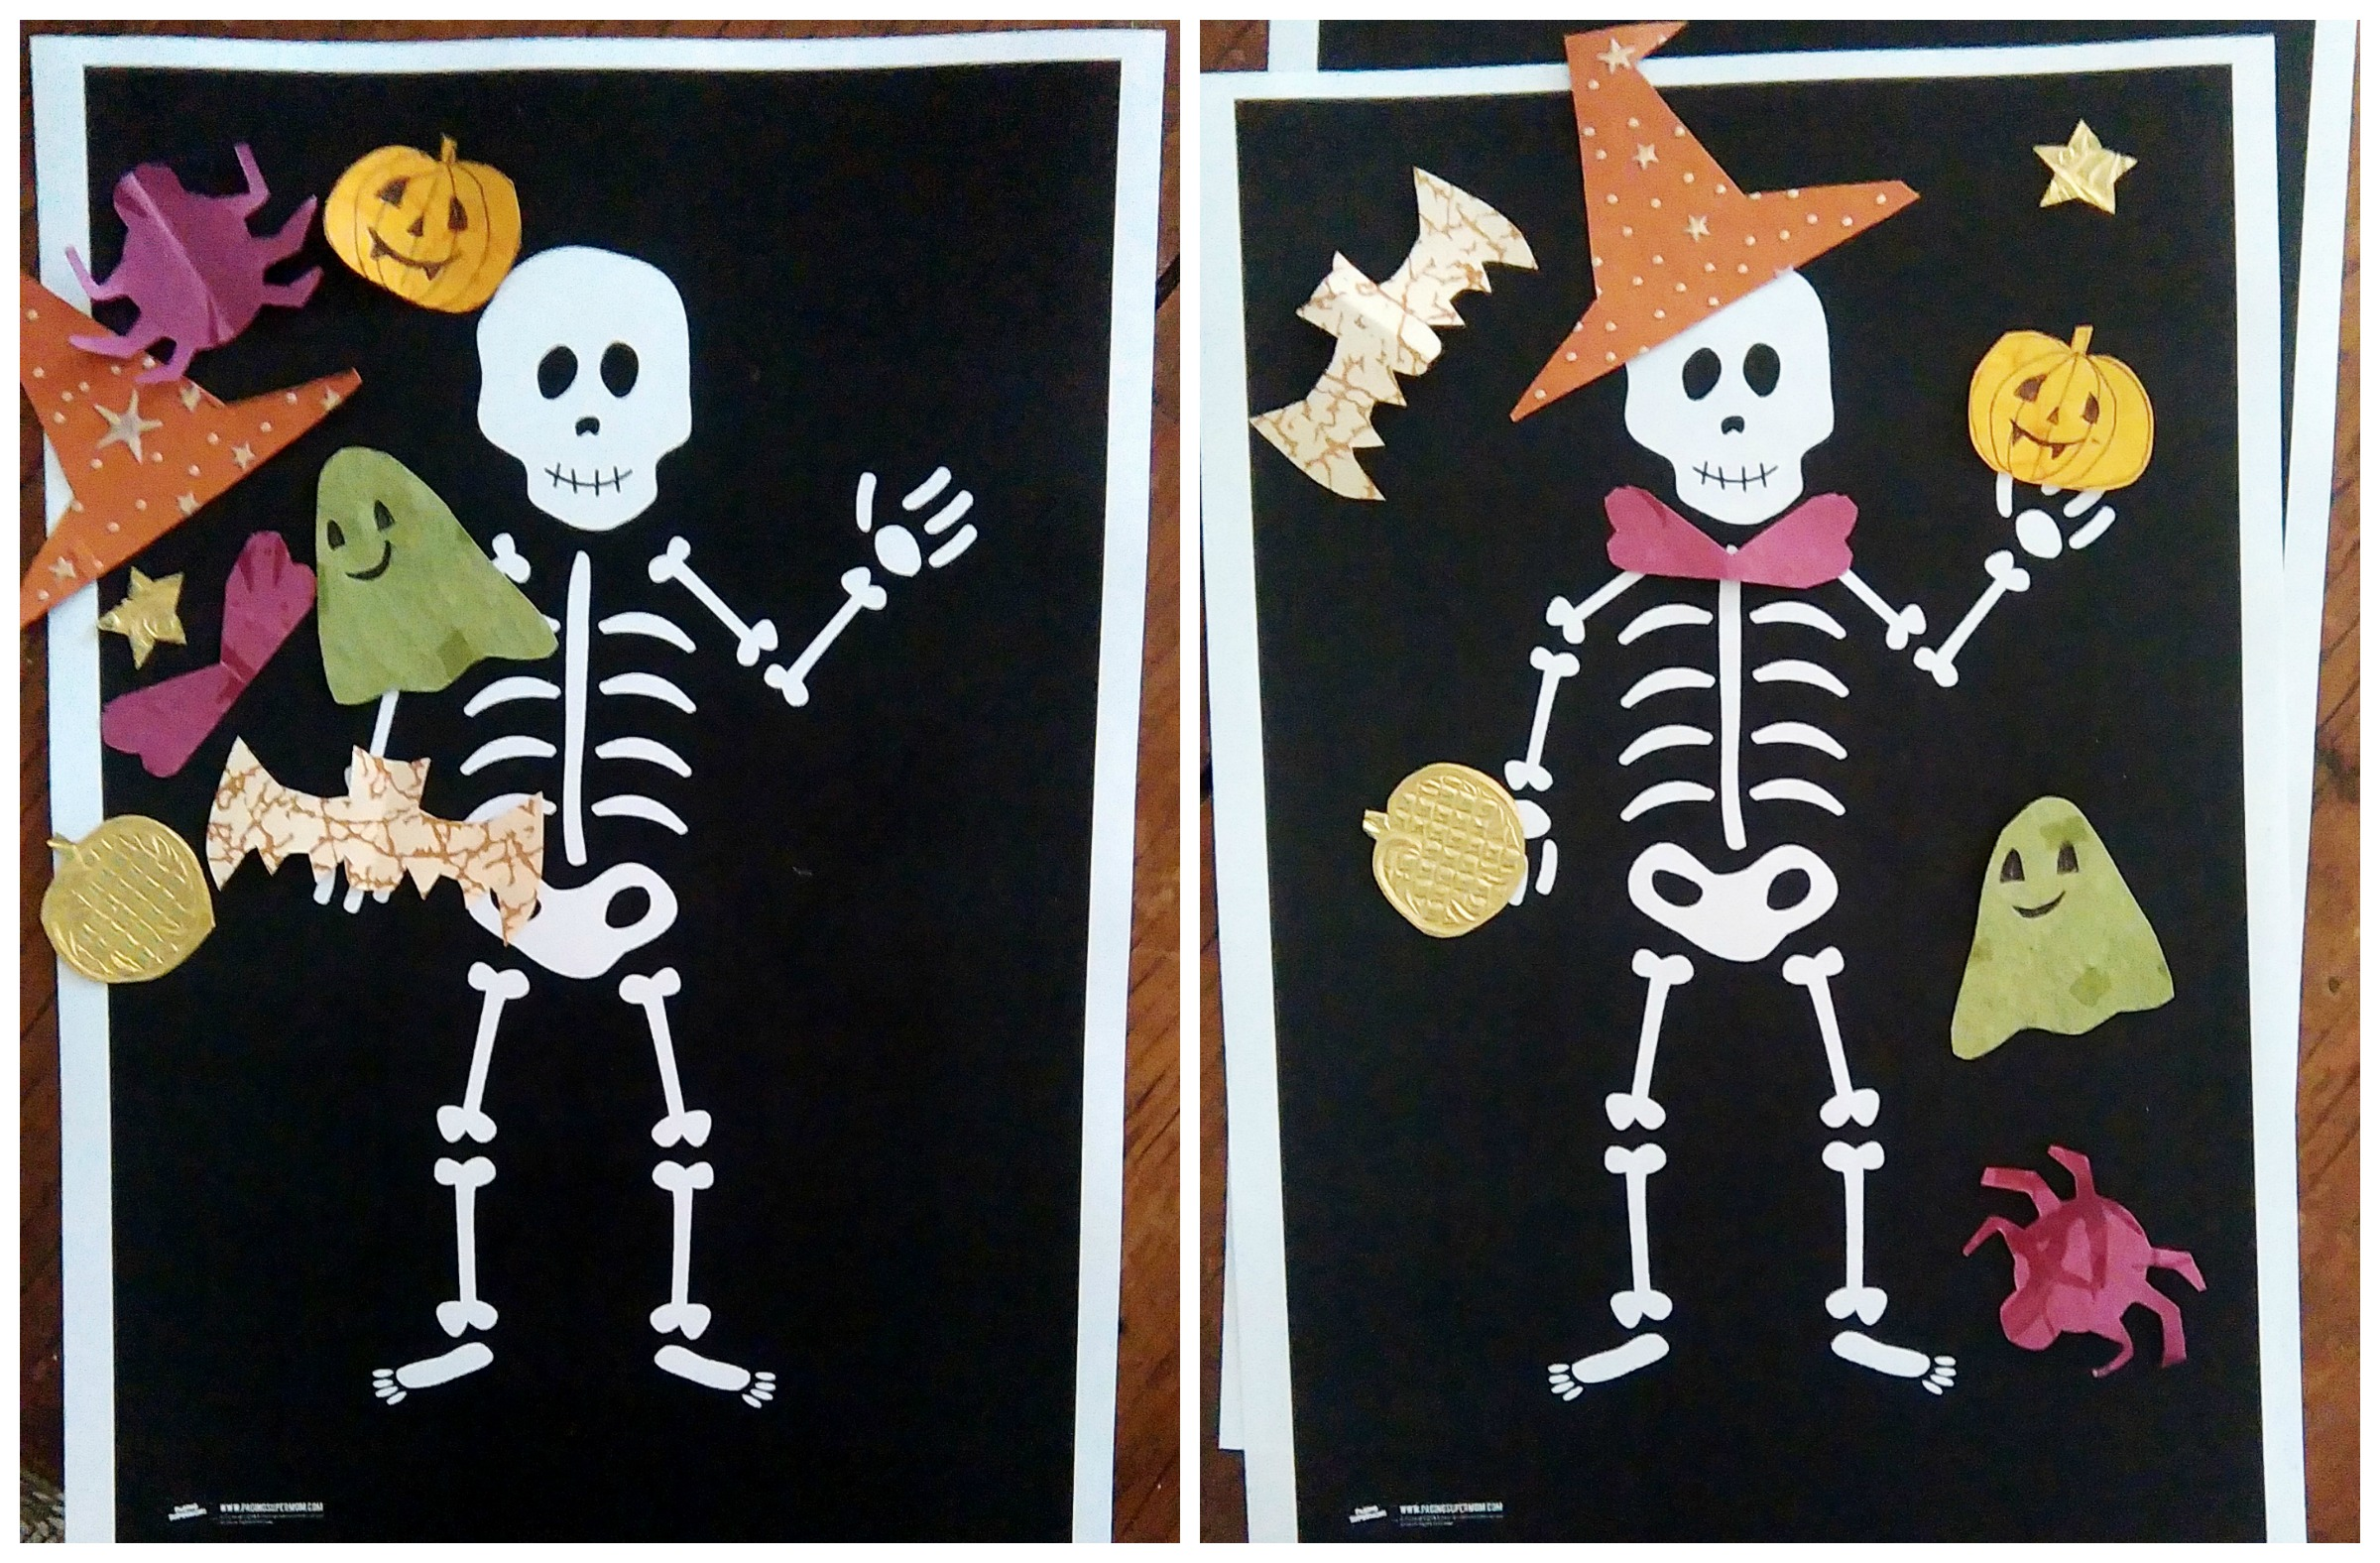 Squelette Halloween Bricolage Bordelaise By Mimiactivités And Sorties Pour Halloween